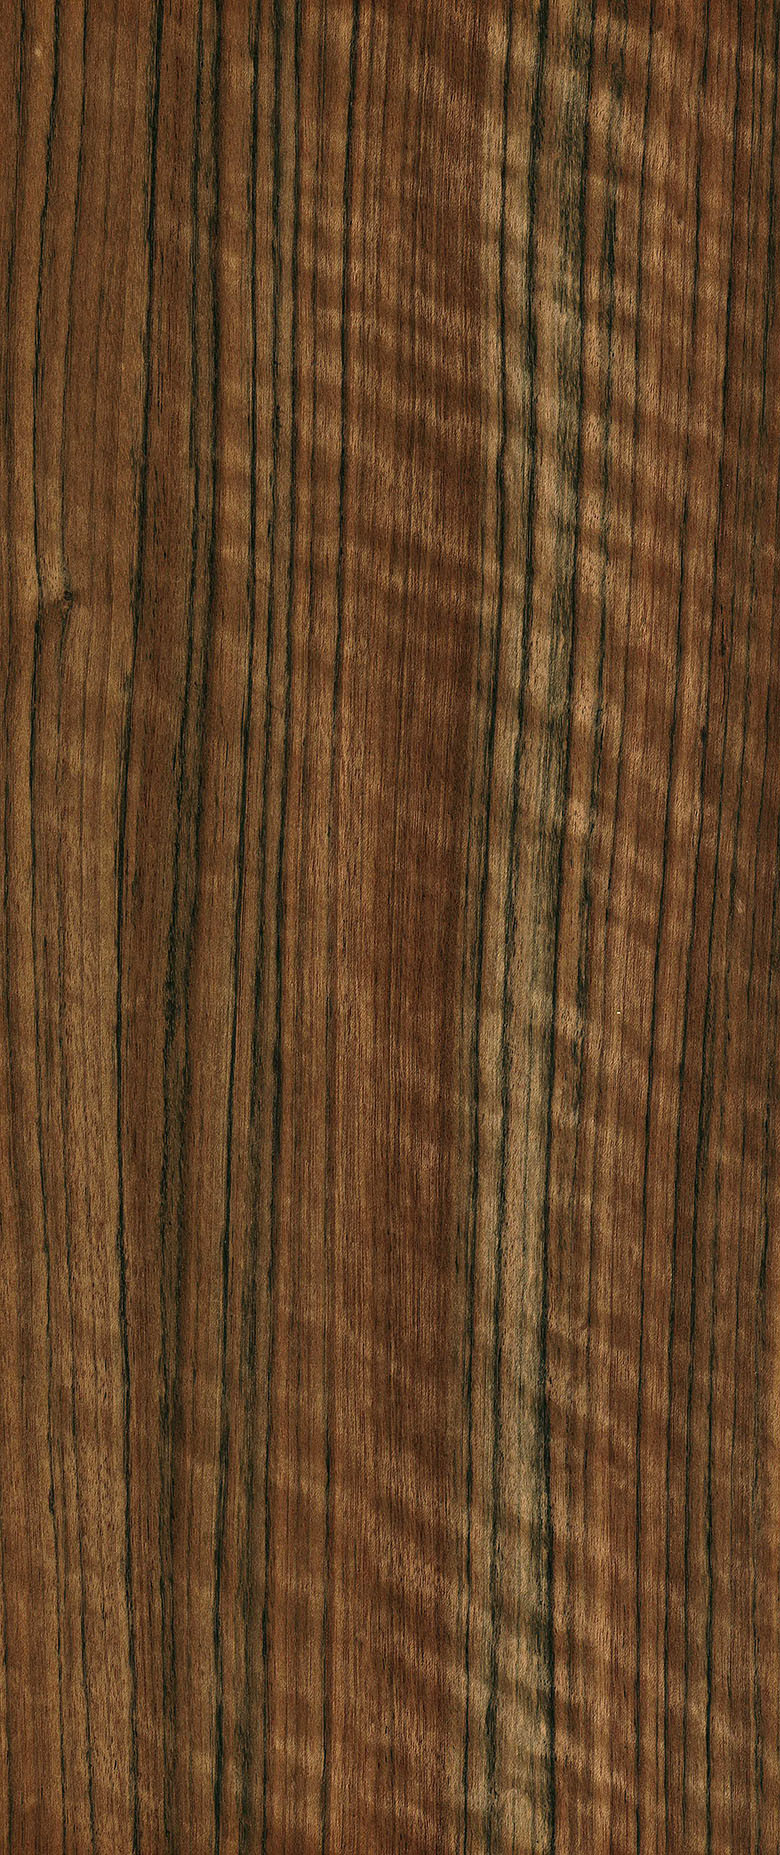 hardwood floor wood hardness scale of ovangkol the wood database lumber identification hardwood throughout curly ovangkol 19″ x 7 8″